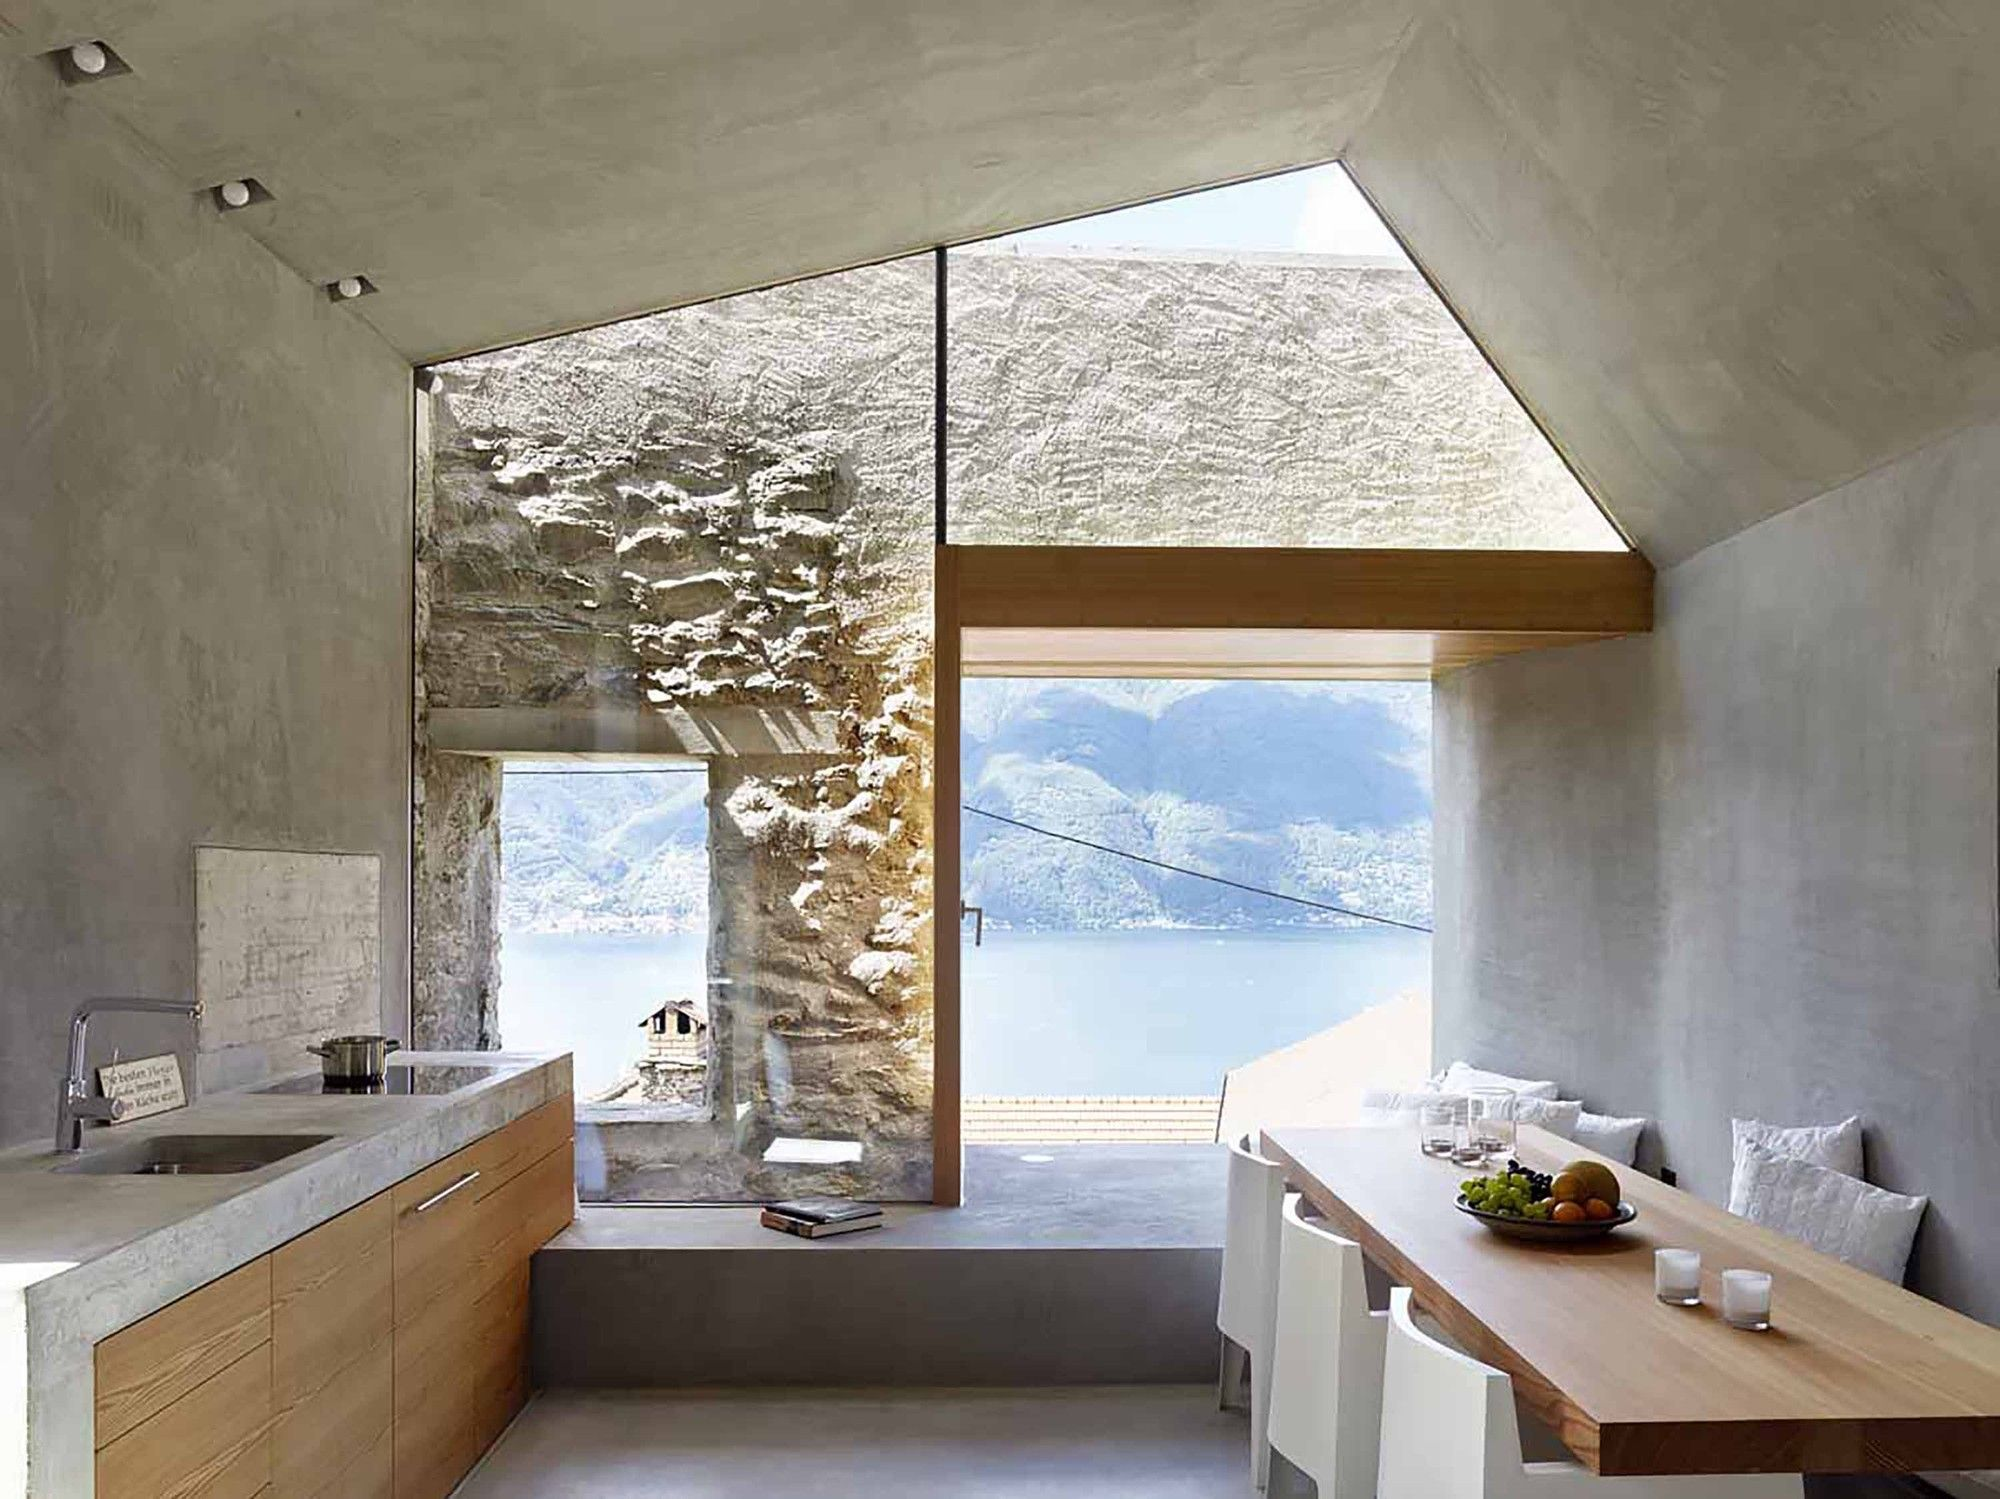 Gallery - Stone House Transformation in Scaiano / Wespi de Meuron Romeo architects - 11